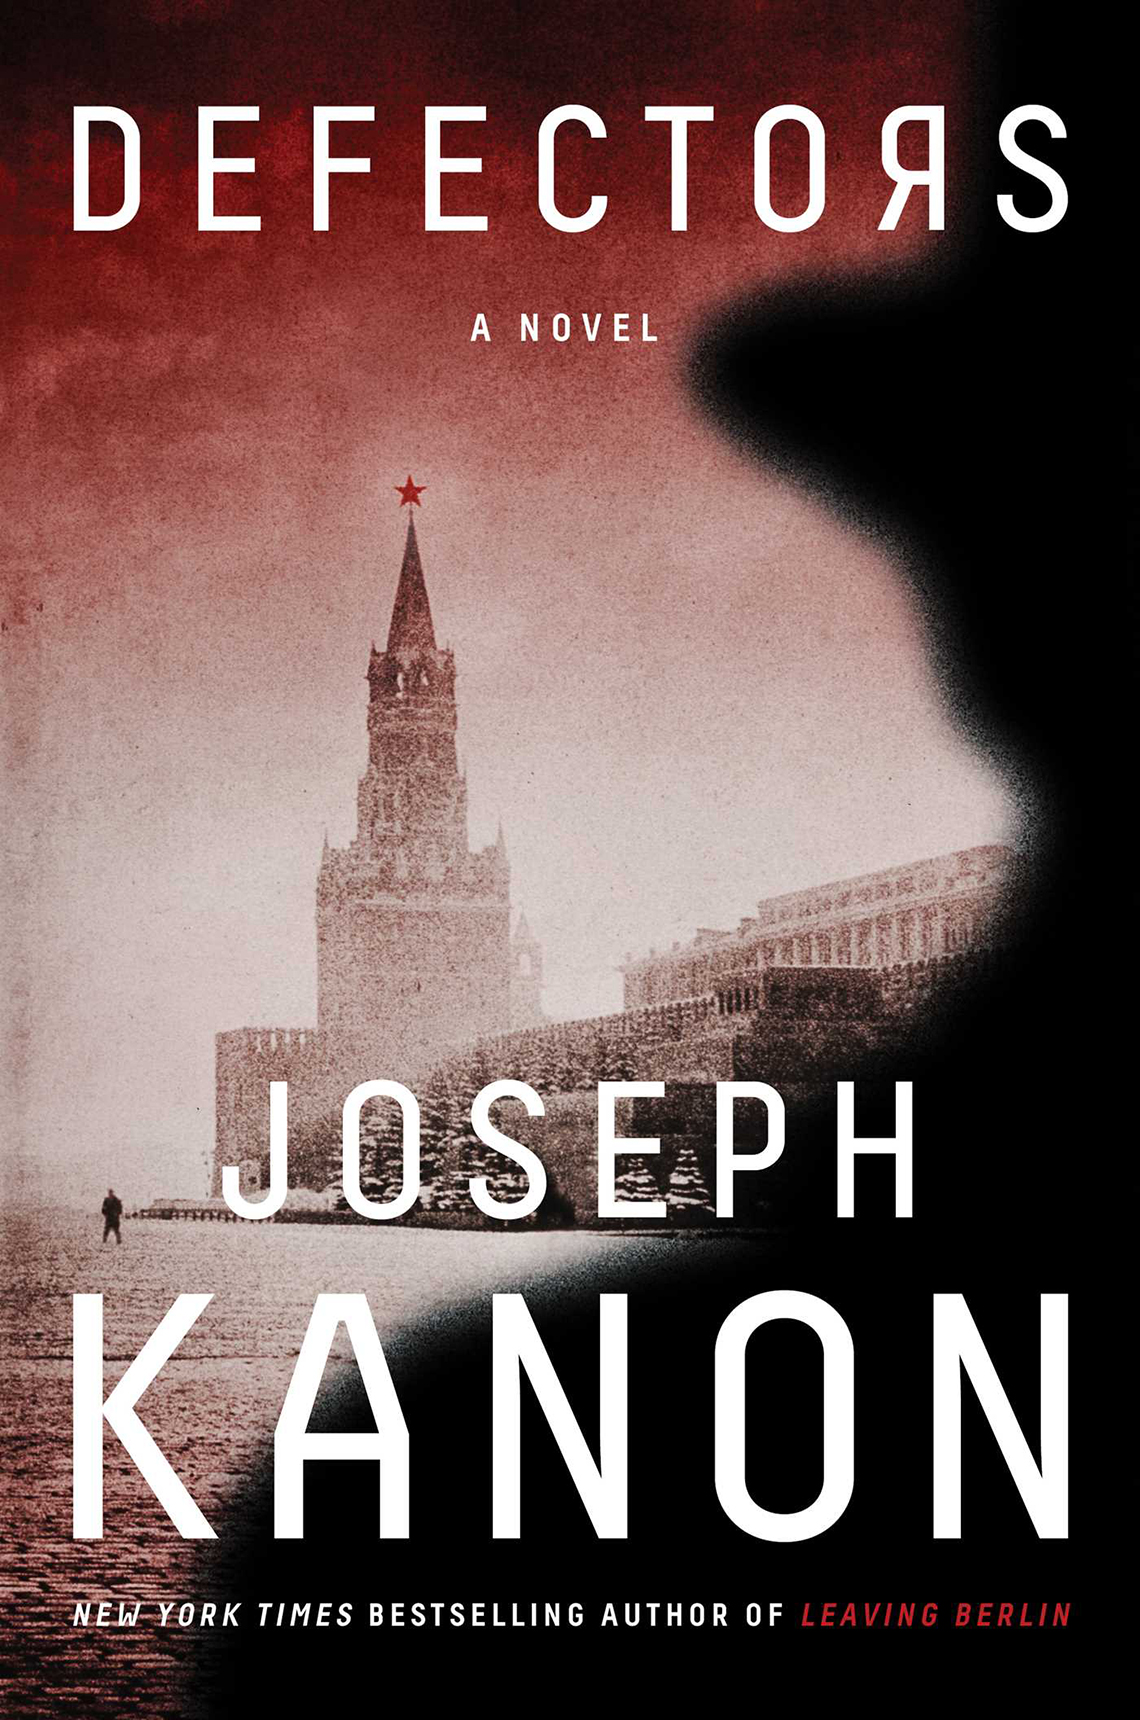 Defectors, by Joseph Kanon